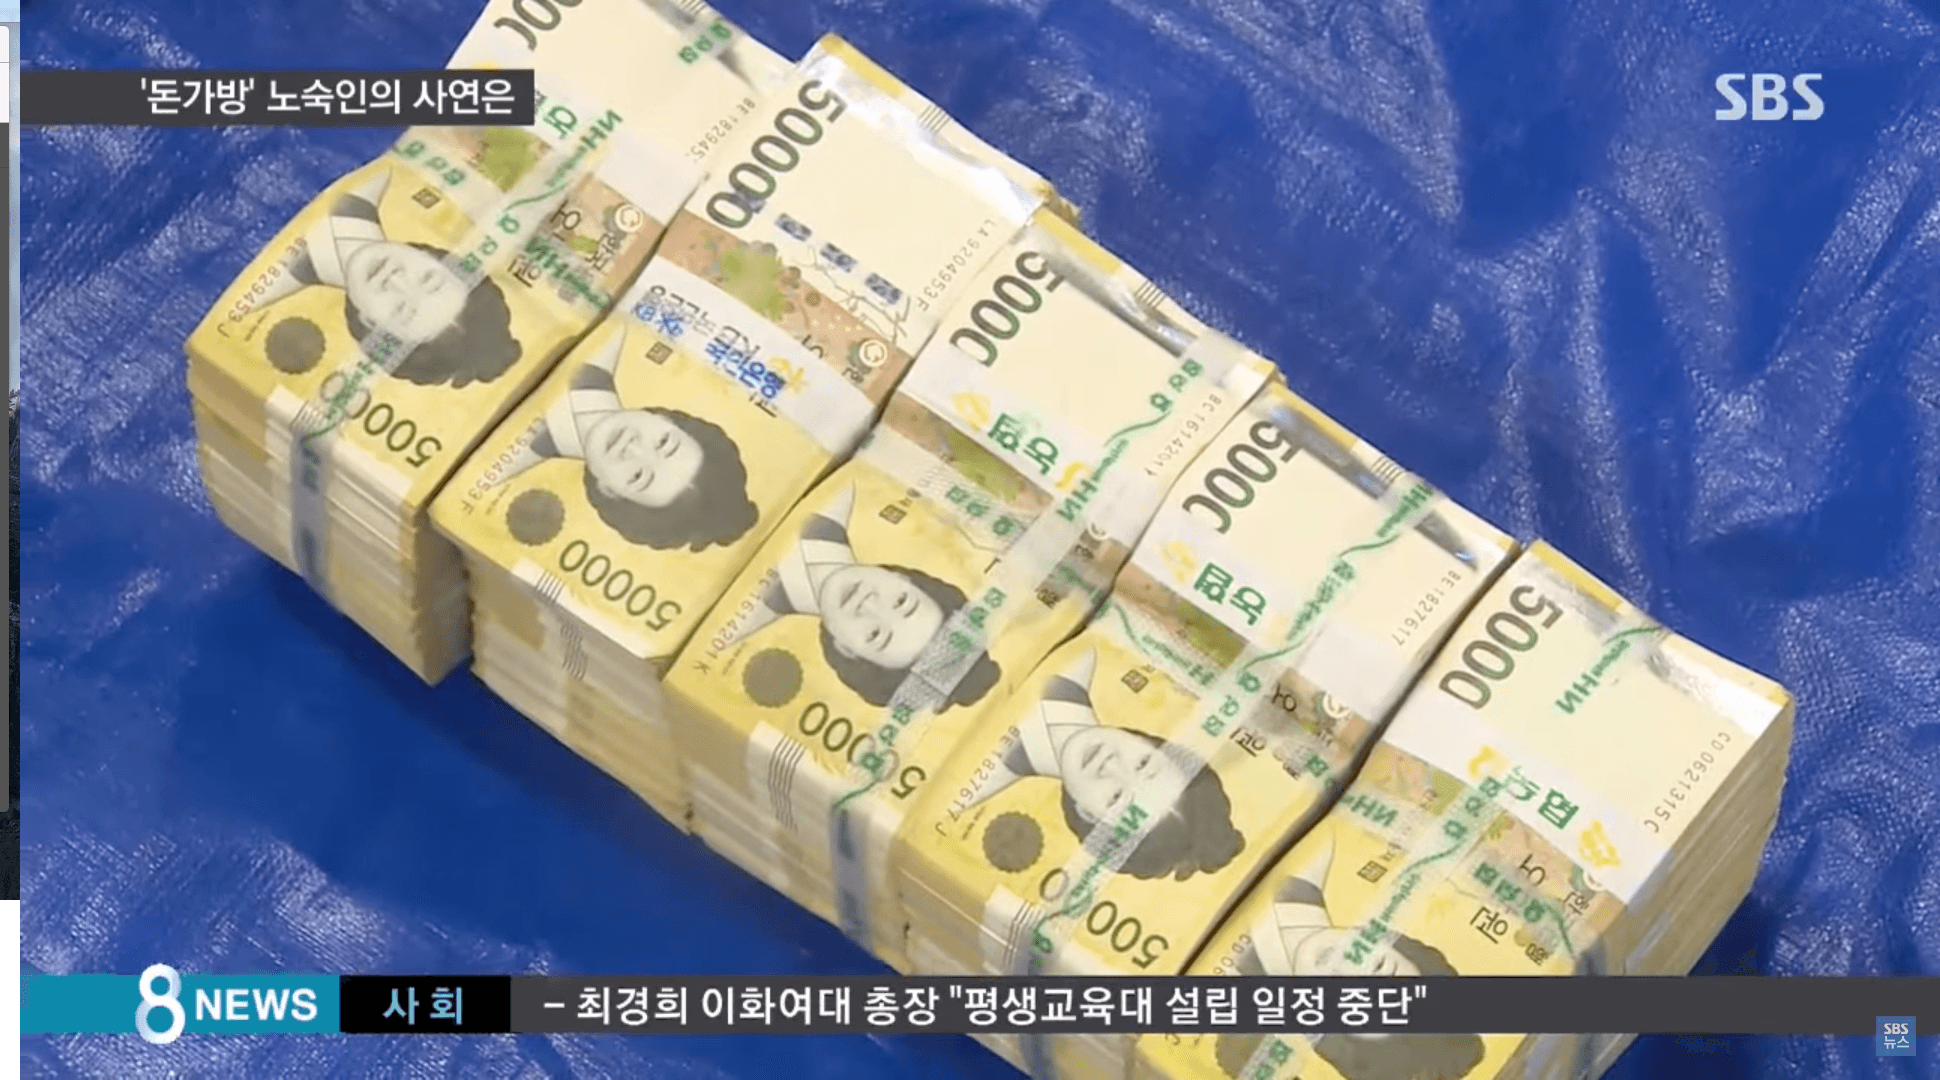 Police Help Homeless Man Recover Bag With 250 Million Won Inside